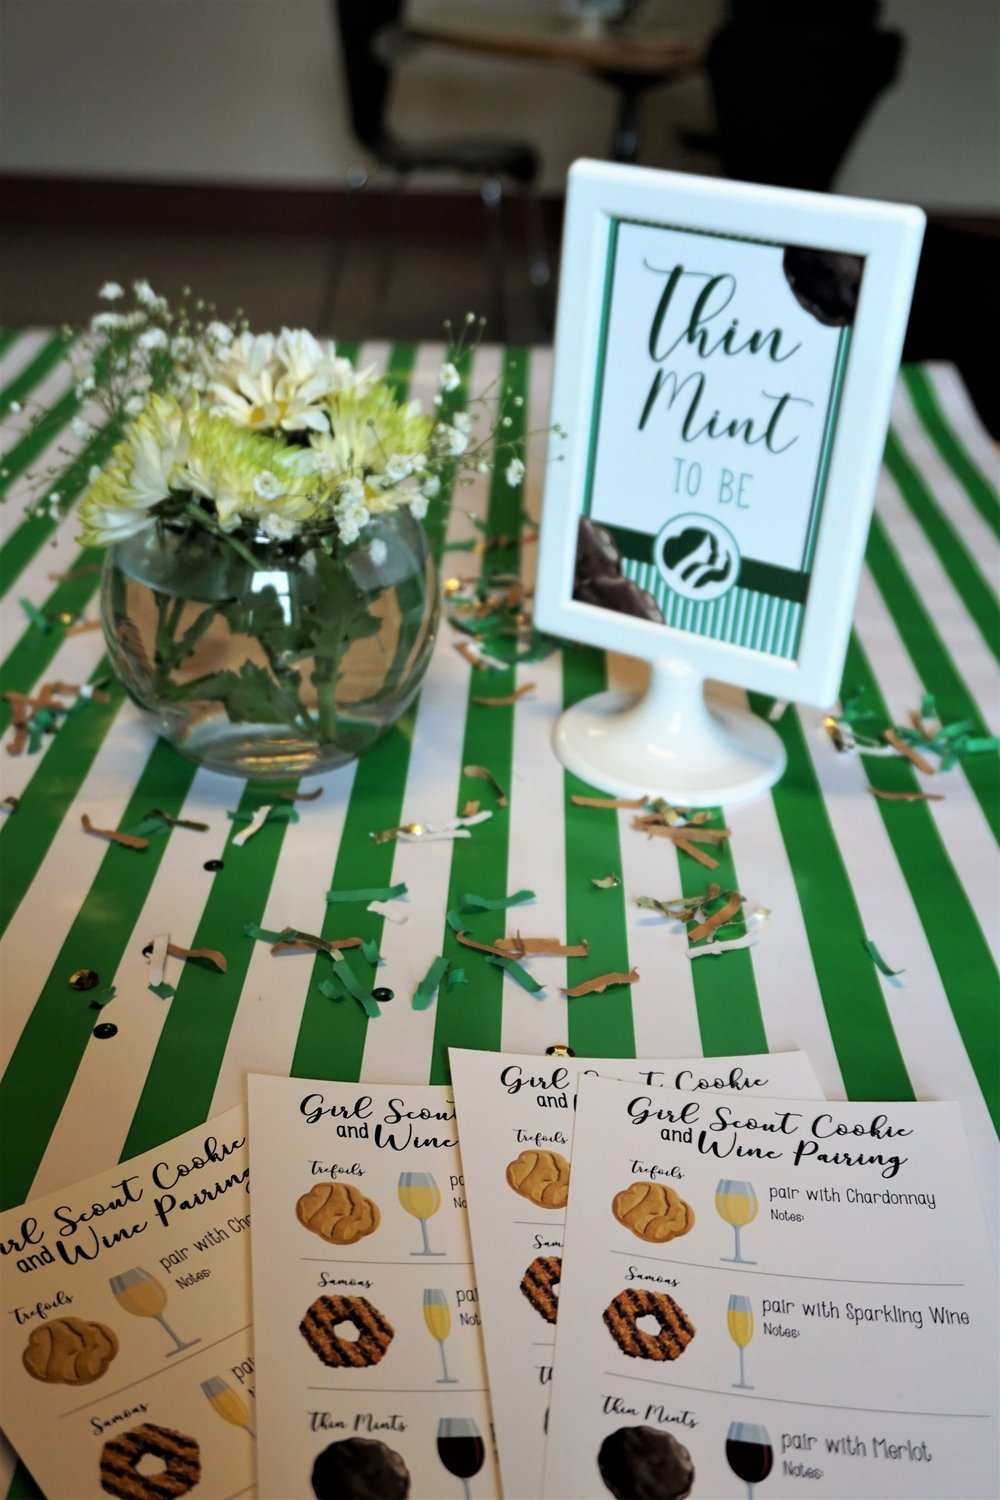 Girl Scout cookie and wine tasting tables with daisy floral arrangements, confetti, and sings.